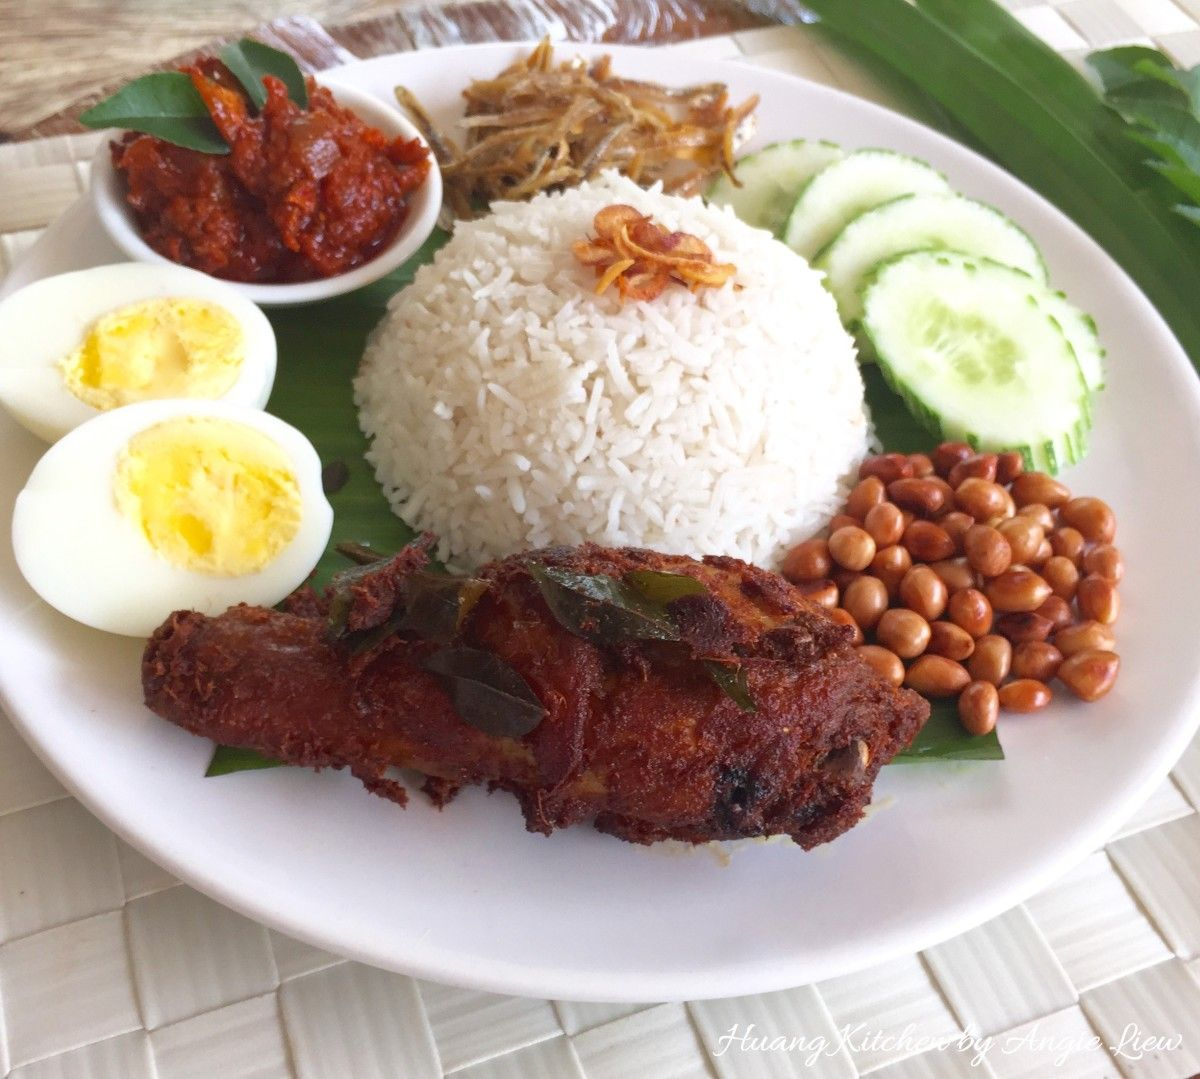 Ayam Goreng Berempah (Malay Spiced Fried Chicken)